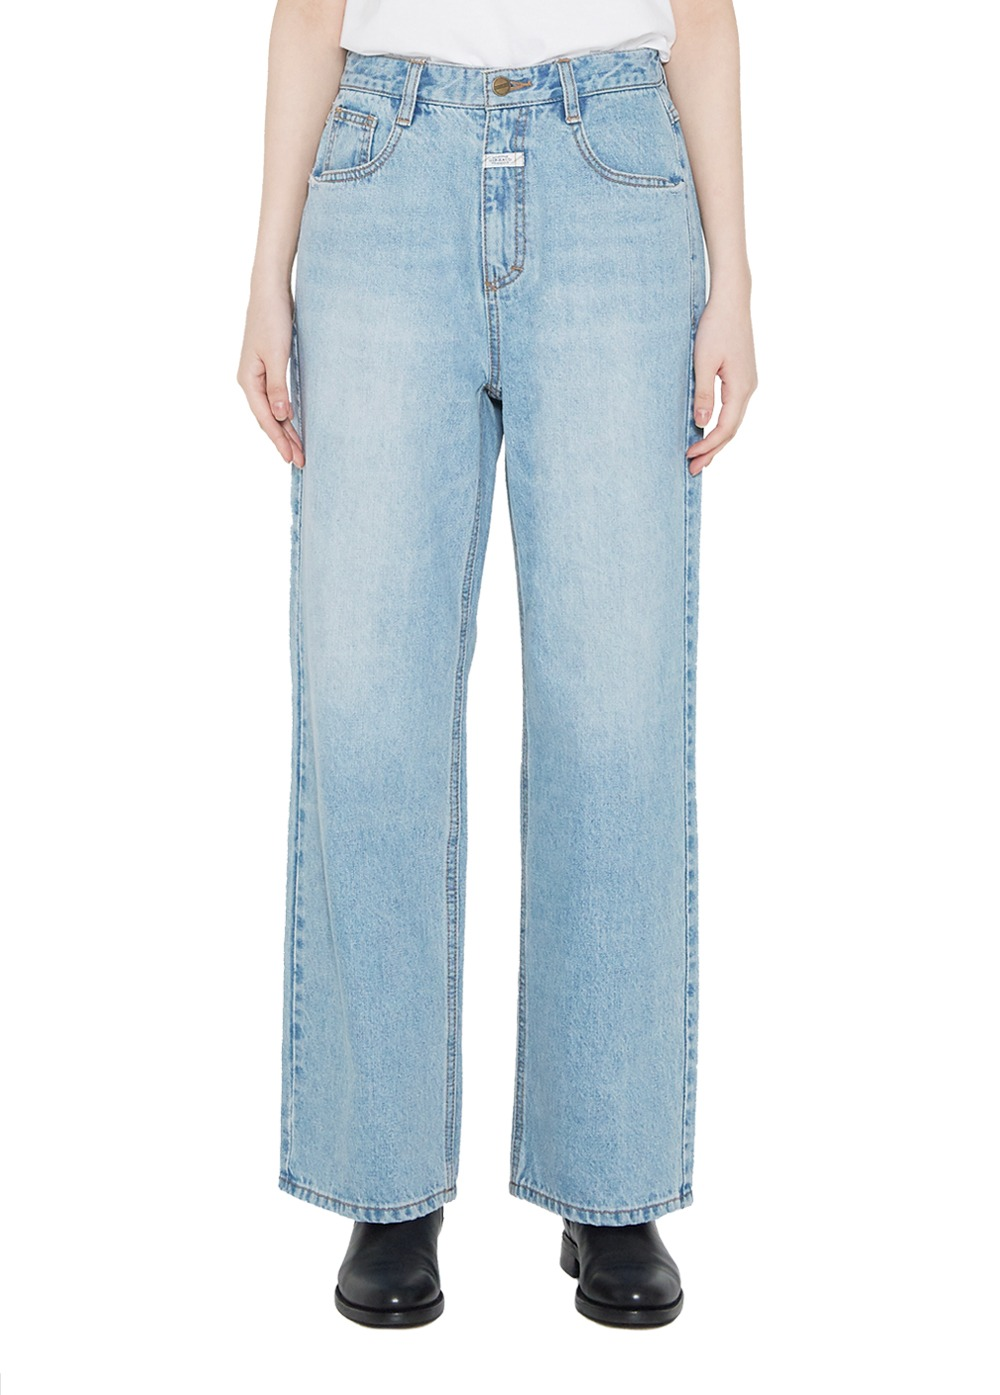 MFG W WIDE JEANS light blue